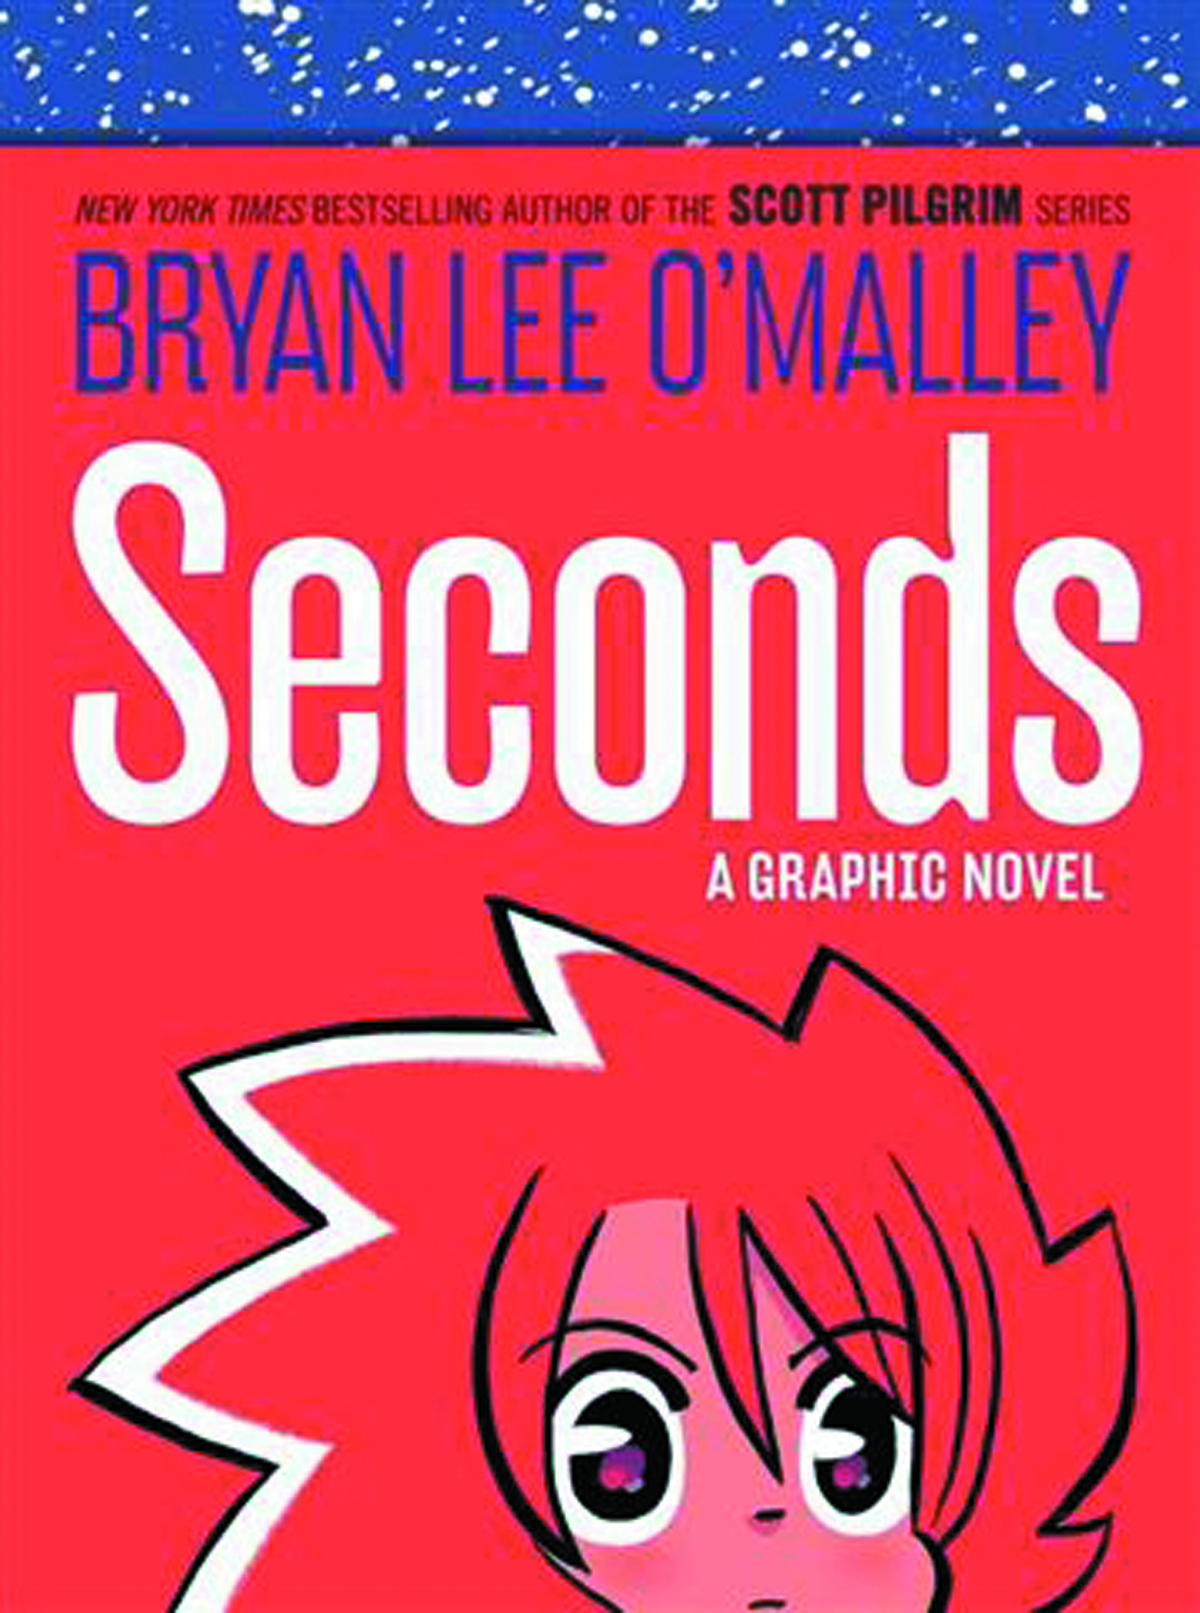 (USE MAR188243) BRYAN LEE O MALLEY SECONDS GN